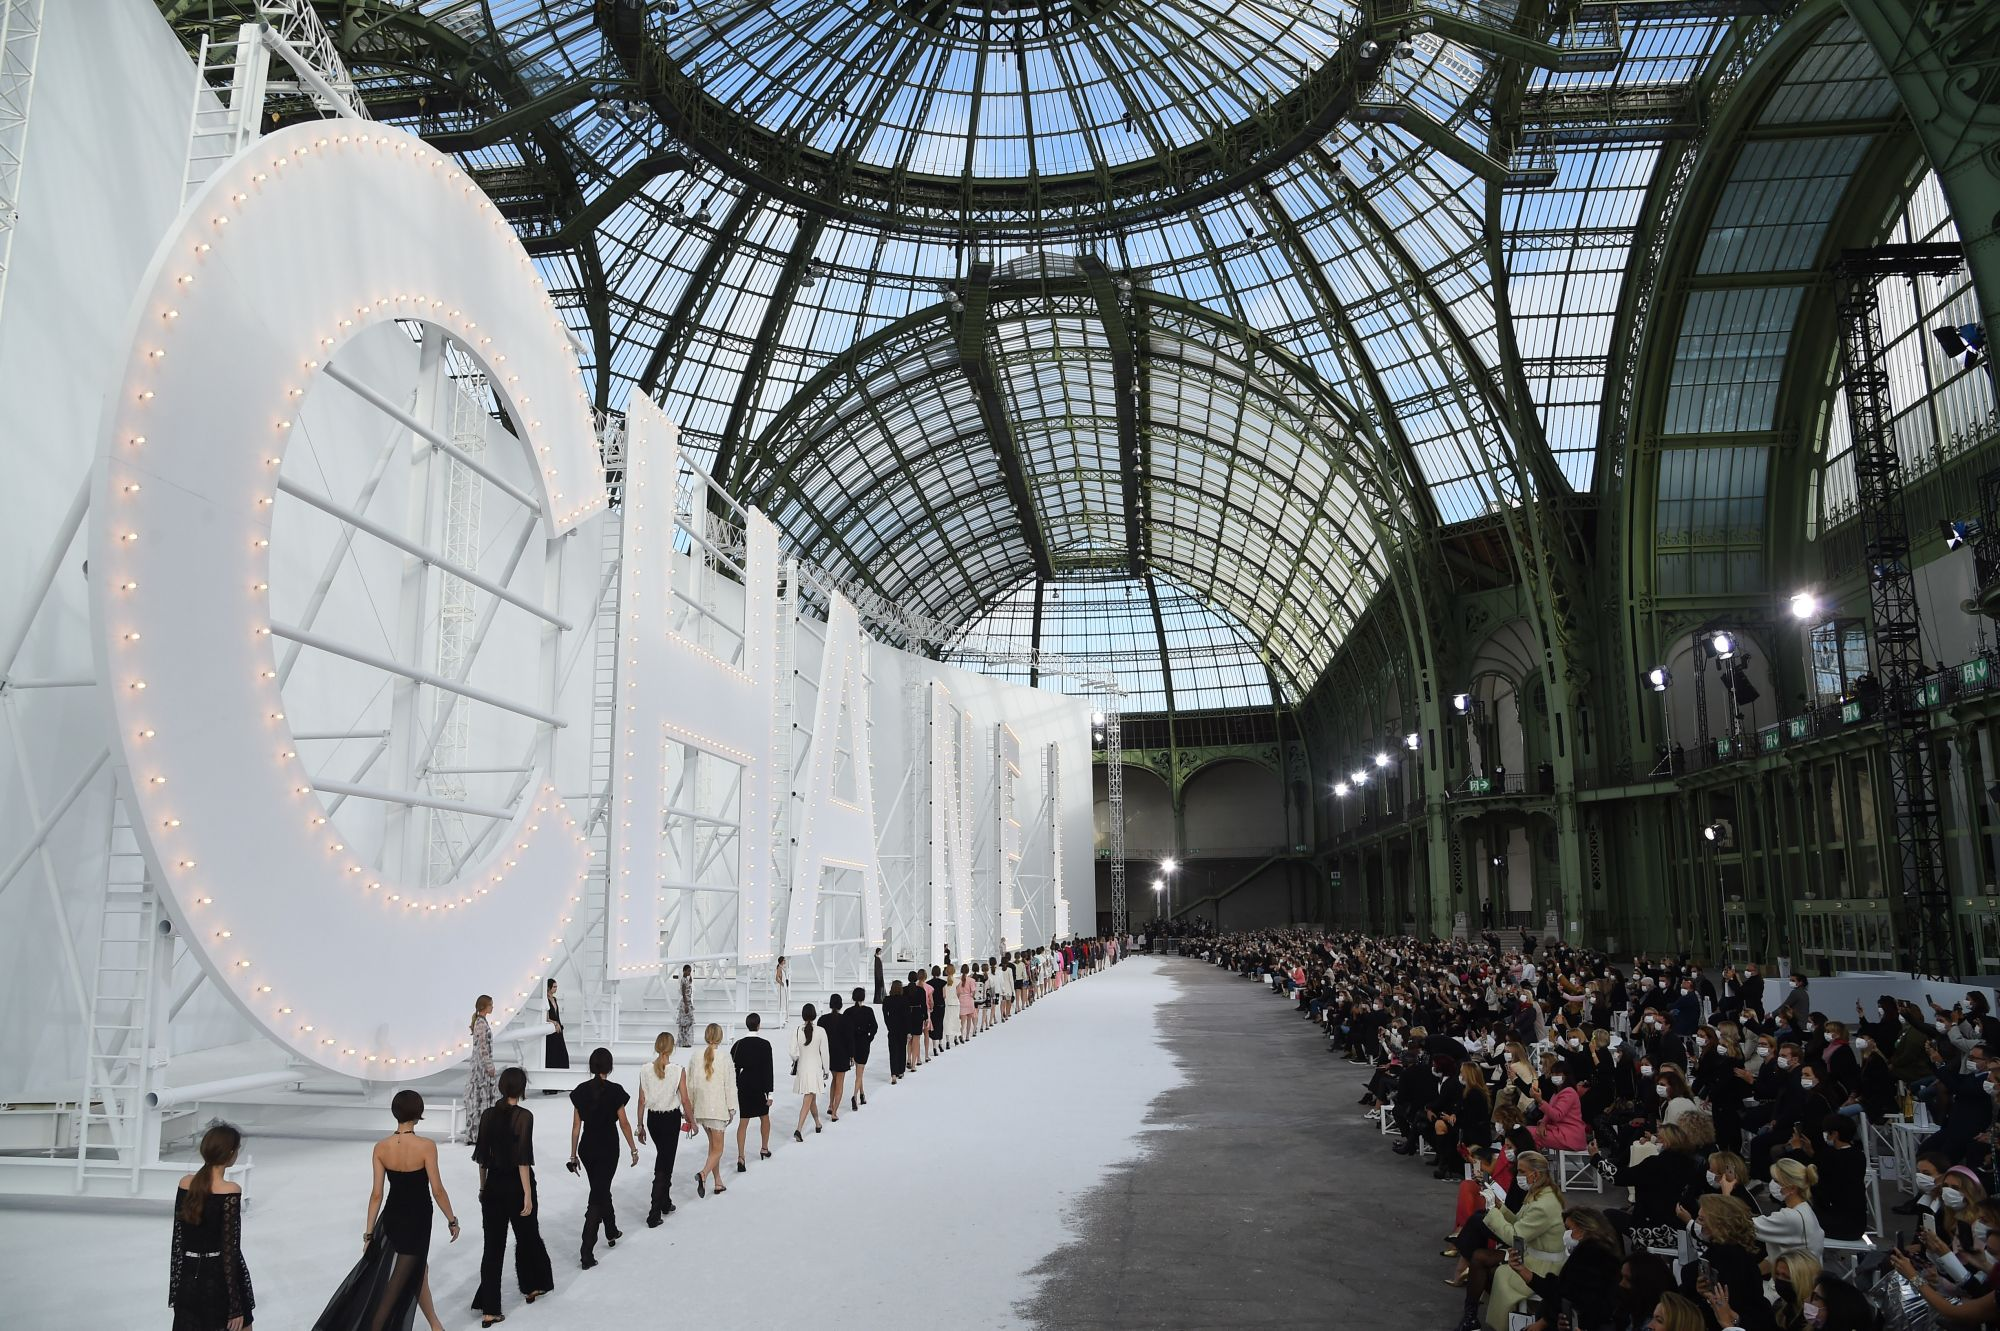 PARIS, FRANCE - OCTOBER 06: Models  walk the runway during the Chanel Womenswear Spring/Summer 2021 show as part of Paris Fashion Week on October 06, 2020 in Paris, France. (Photo by Stephane Cardinale - Corbis/Corbis via Getty Images)